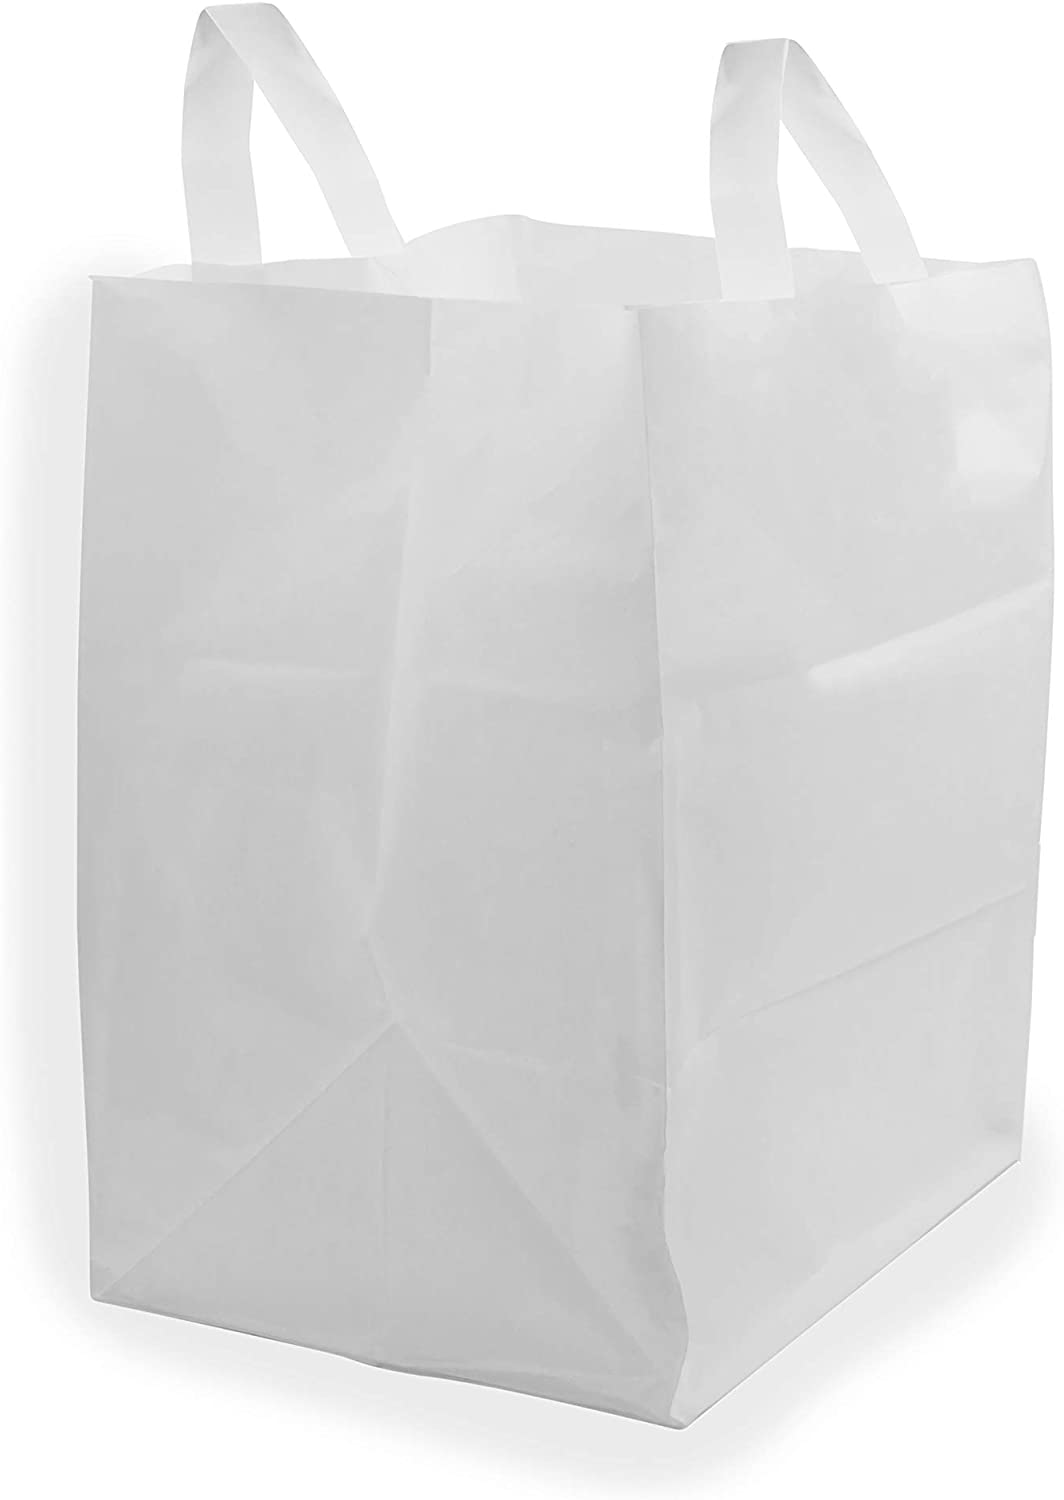 Thick White Plastic Shopping Bags with Handles & Cardboard Bottom, Merchandise Bags, Food Service Bags, Take Out Bags, Gift Bags Bulk (12x10x16 250 pcs.)